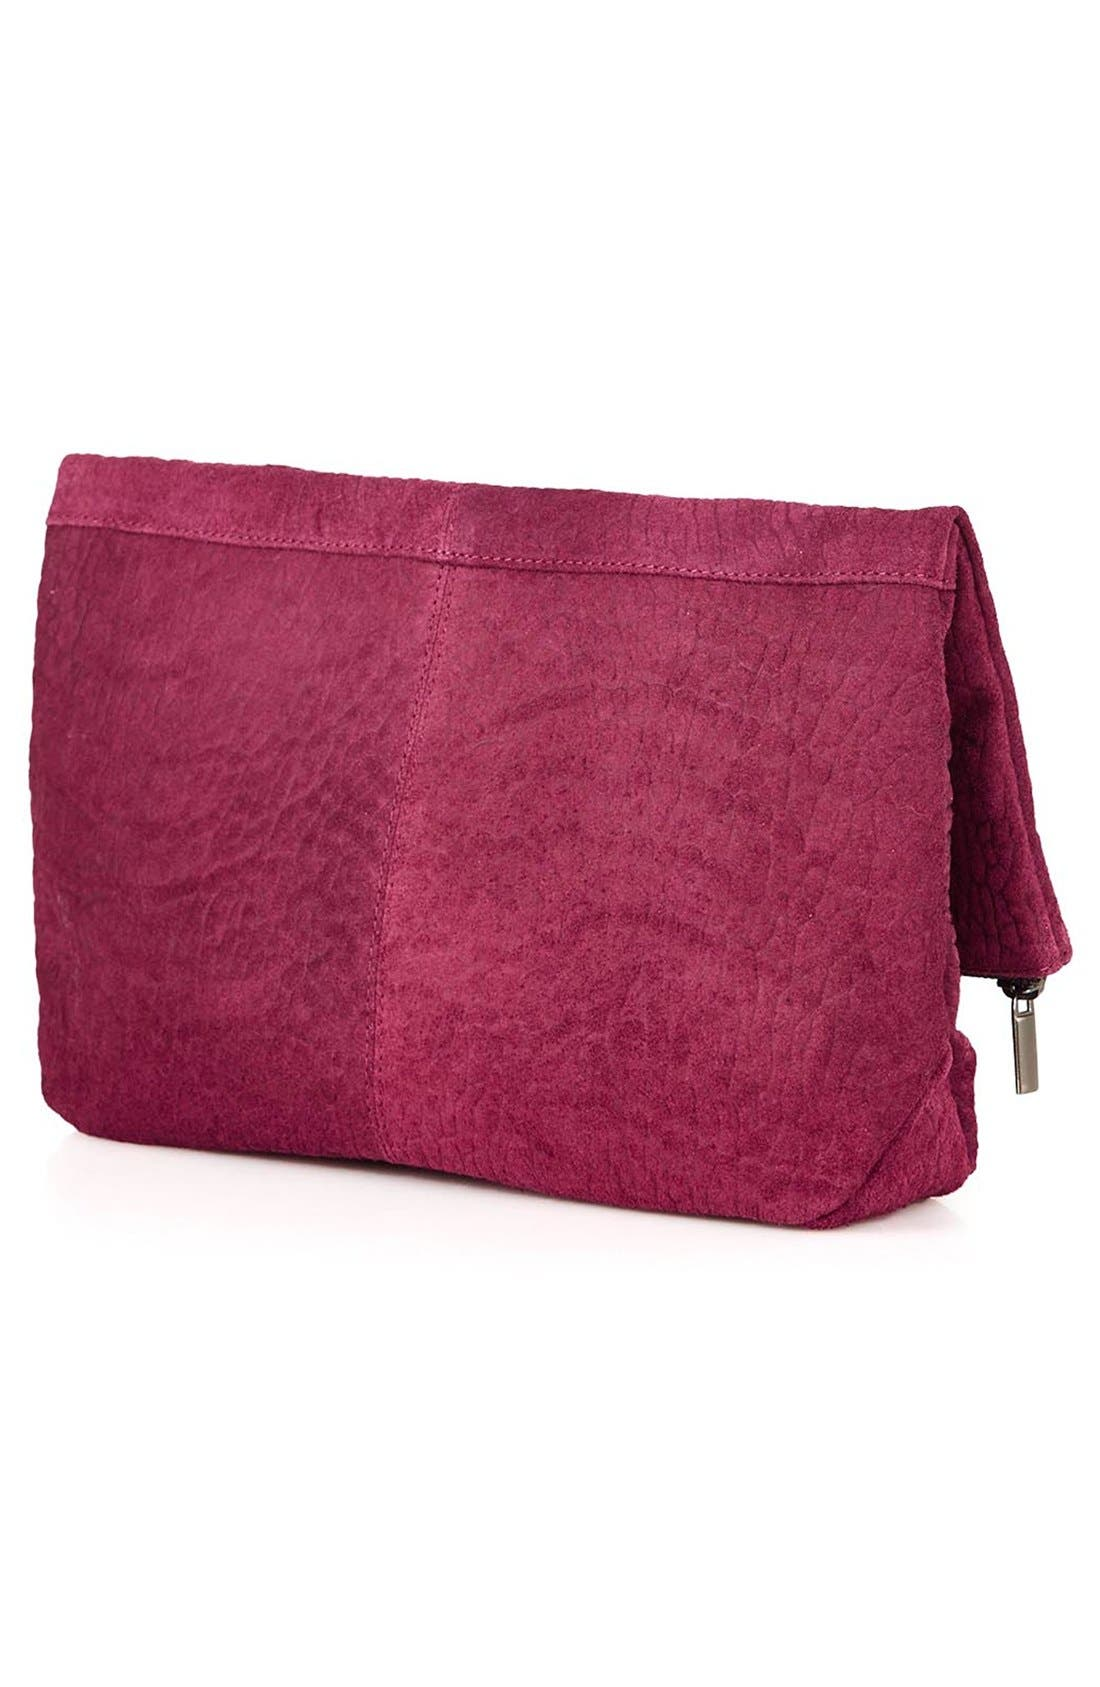 Alternate Image 4  - Topshop Snakeskin Embossed Suede Clutch